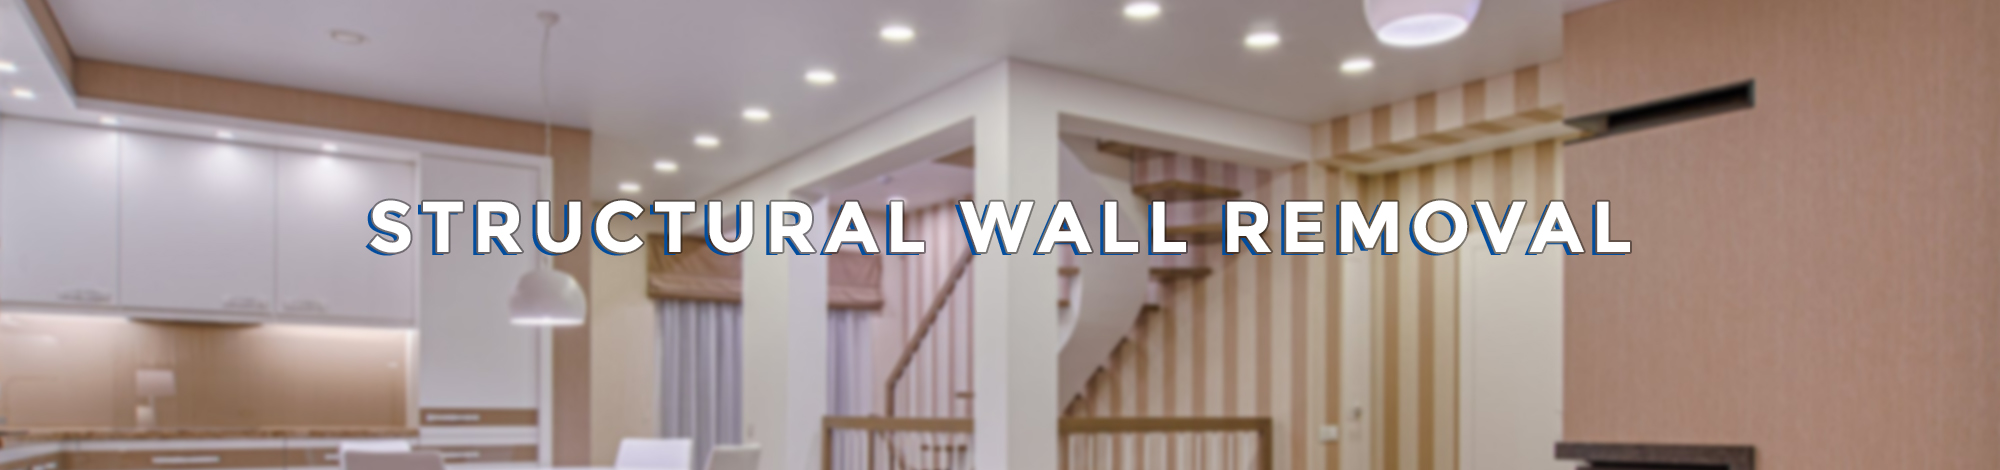 Structural Wall Removal